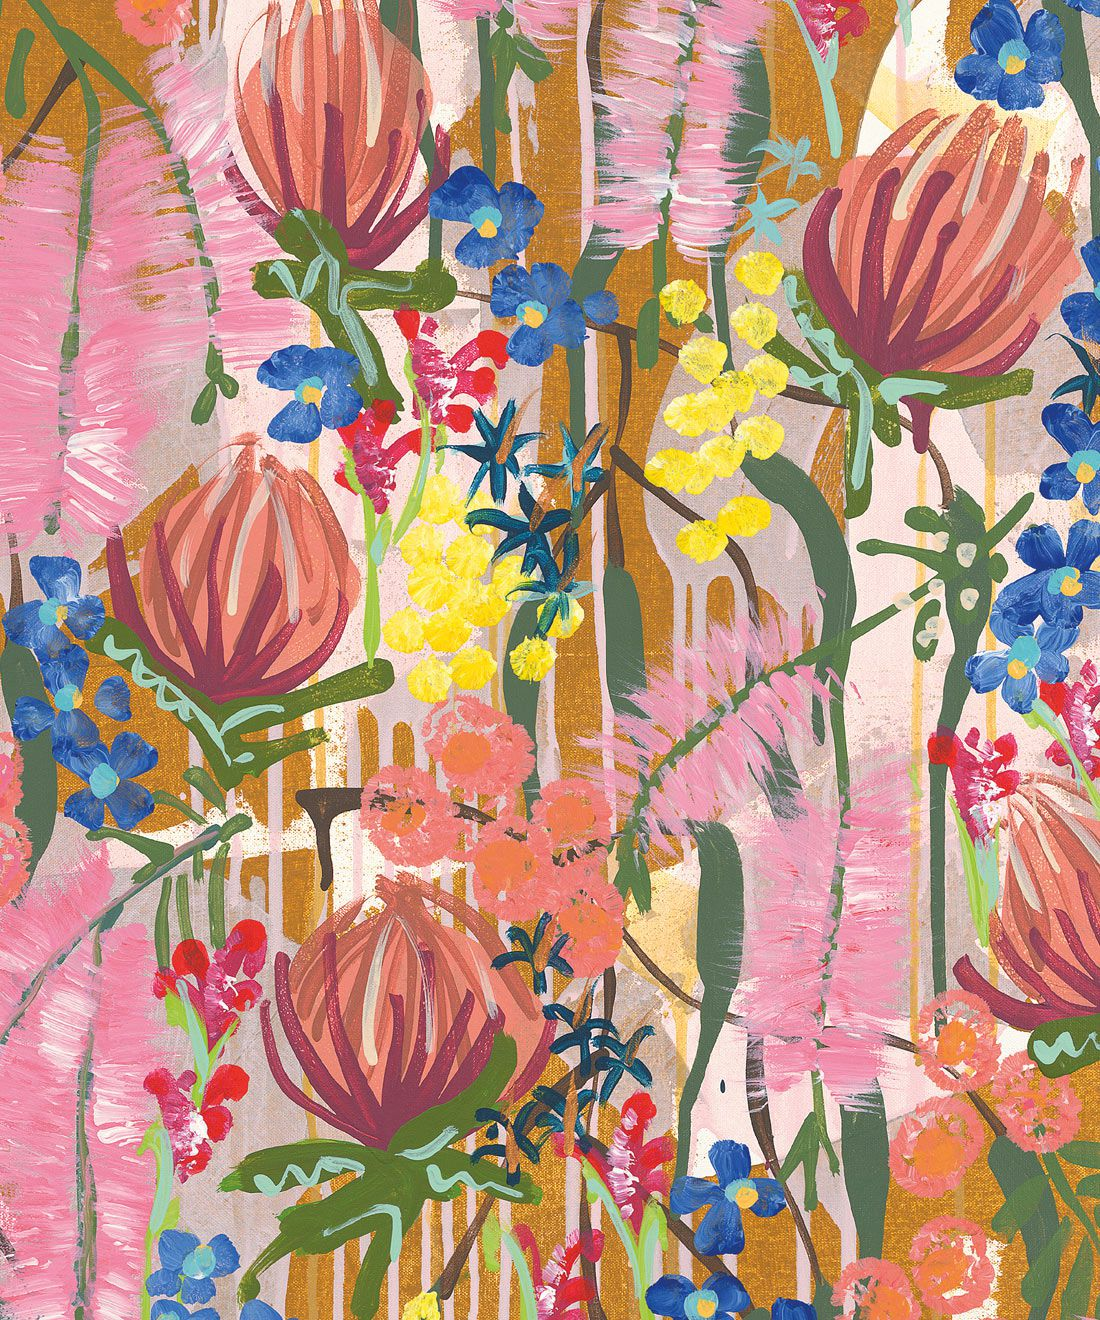 Acacia Wallpaper • Colourful Floral Wallpaper • Tiff Manuell • Abstract Expressionist Wallpaper • Swatch